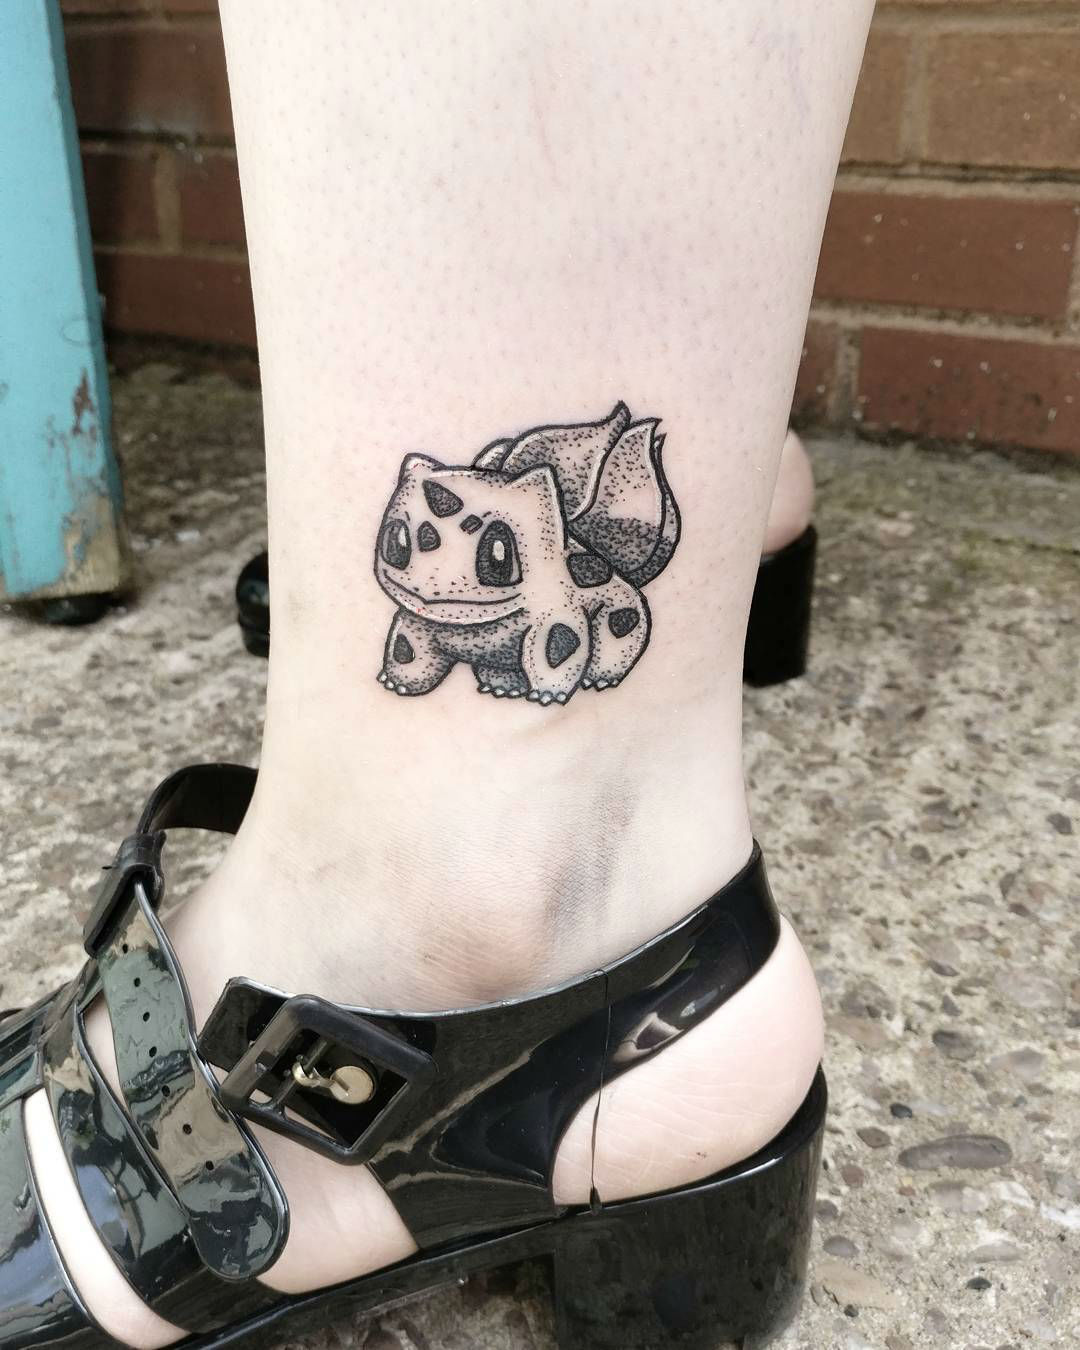 17 Pokemon Tattoos Which Will Throw You Back to Your Childhood